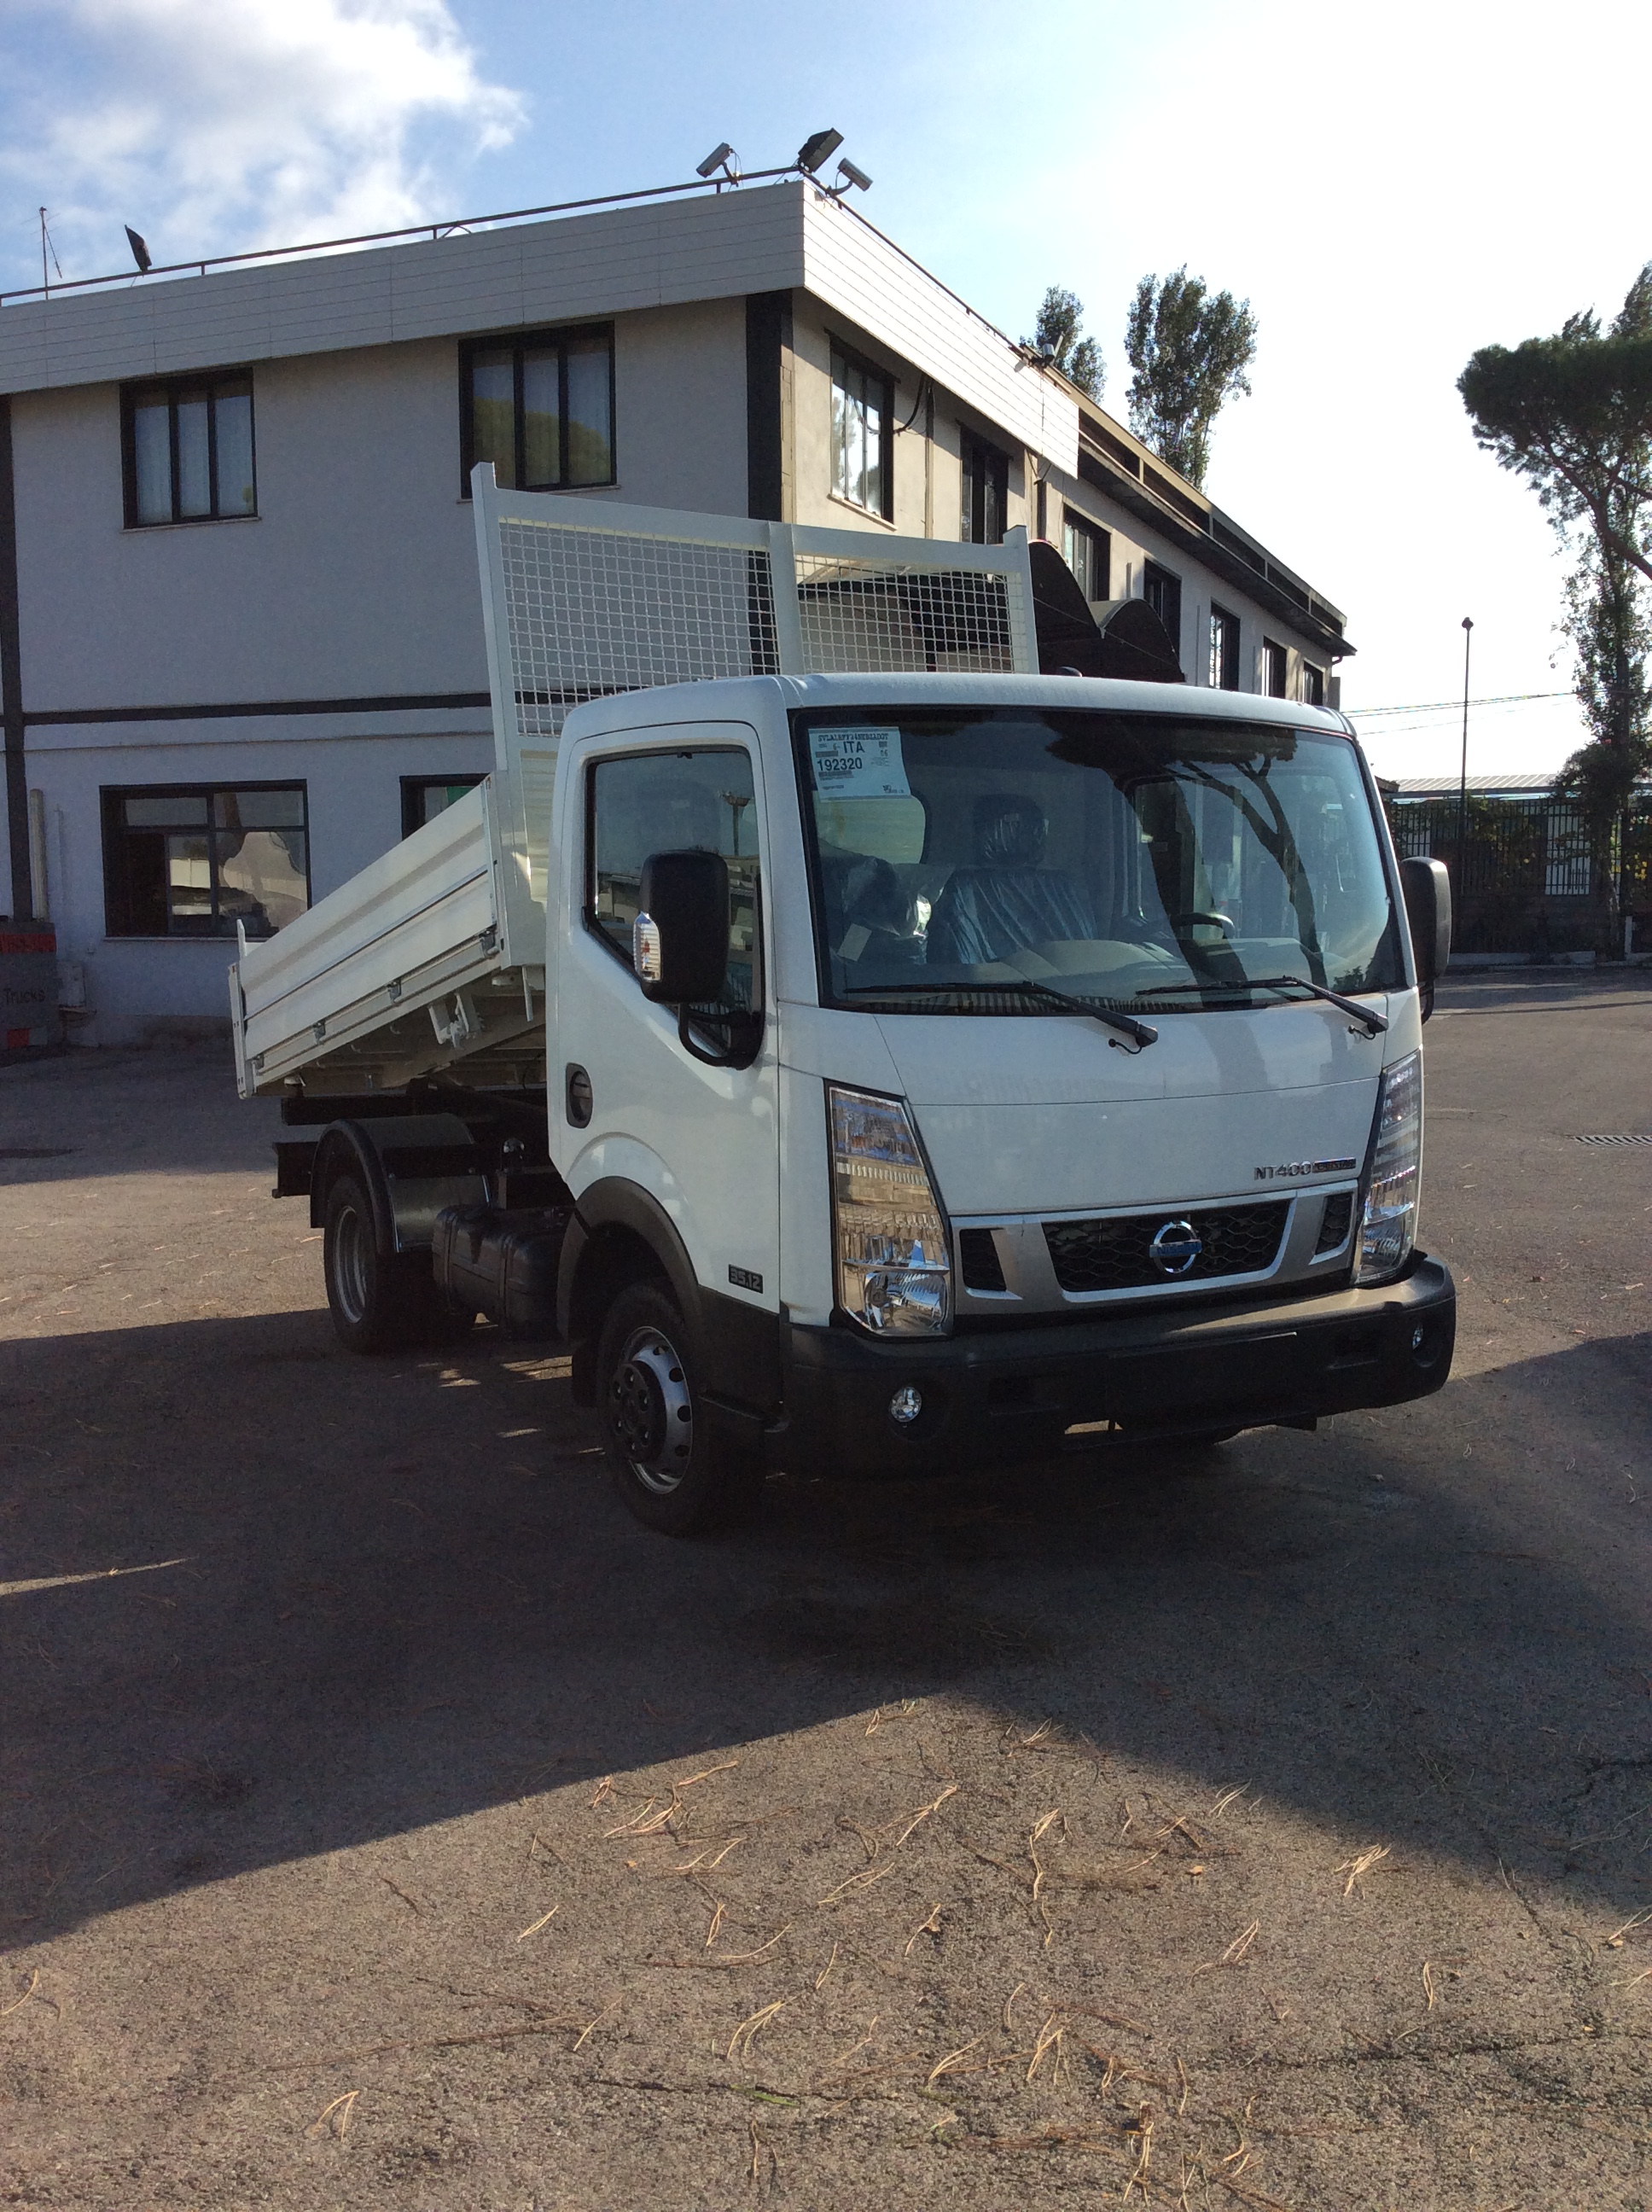 Camion Nissan per scaricare materiali